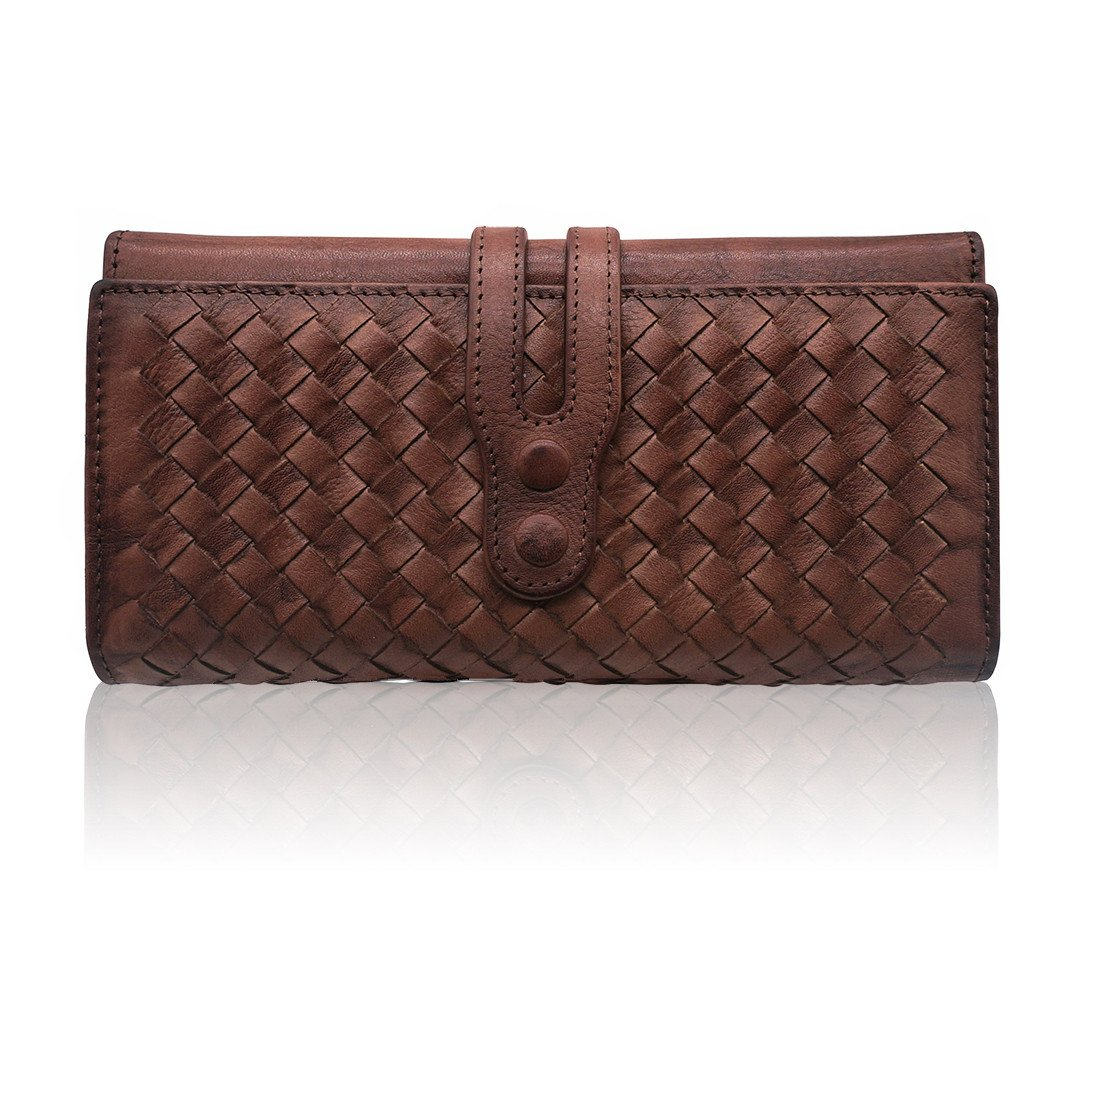 Wallets for Women Genuine Leather Handmade Ladies Woven Wallet Purse  Knitting Card Holder(Coffee) at Amazon Women s Clothing store  36601304ee7d9